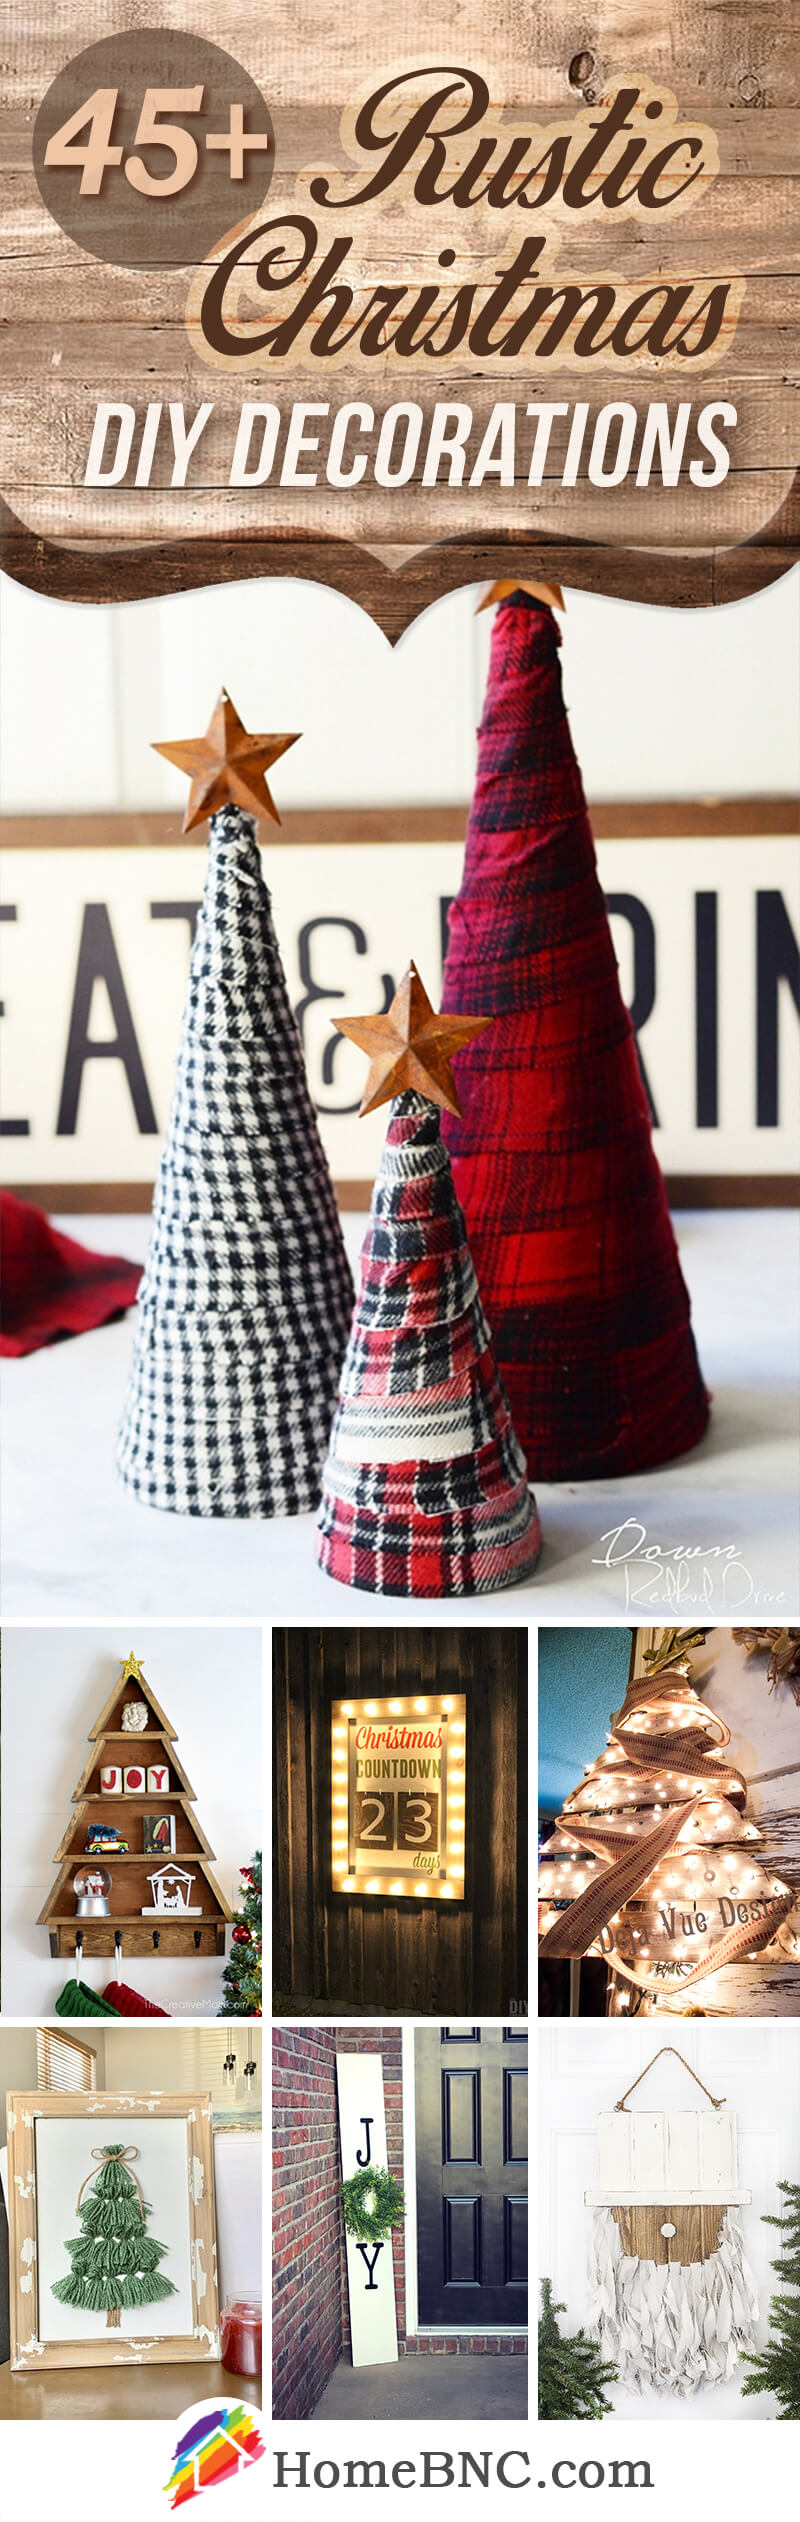 45 Best Rustic Diy Christmas Decor Ideas And Designs For 2021